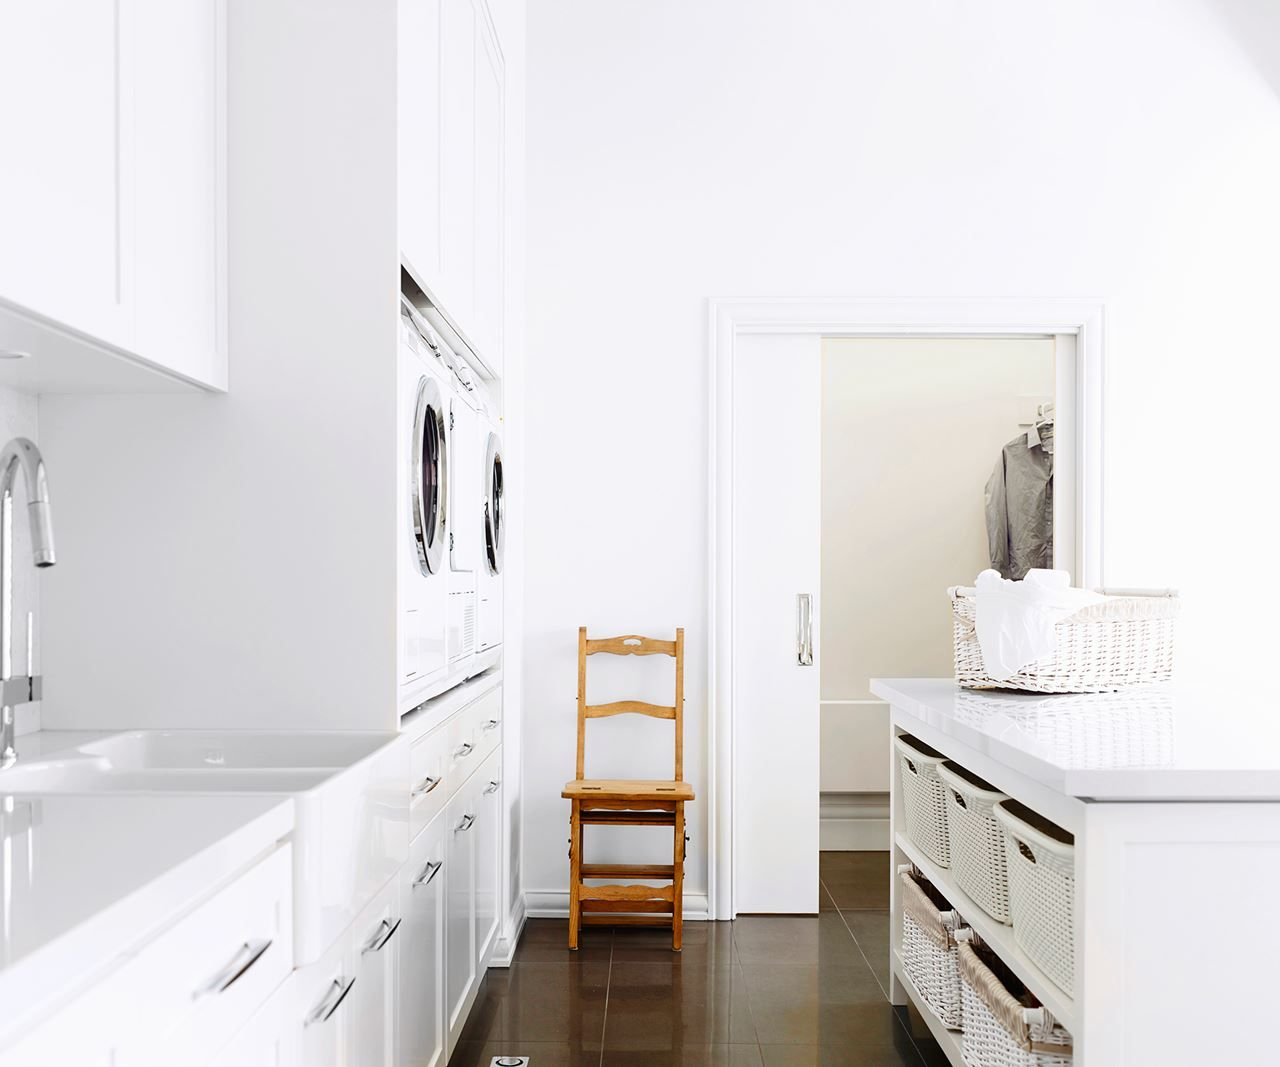 """With plenty of room to play with, this laundry – serving a large family – accommodates two washing machines, a double trough and a walk-in drying closet. Completely overhauled by Melbourne architecture and design firm [Canny](http://www.canny.com.au/?utm_campaign=supplier/ target=""""_blank""""), the room features a Stone Italiana-topped island for folding clothes, and wicker baskets for sorting them. Photo: Supplied by Canny"""